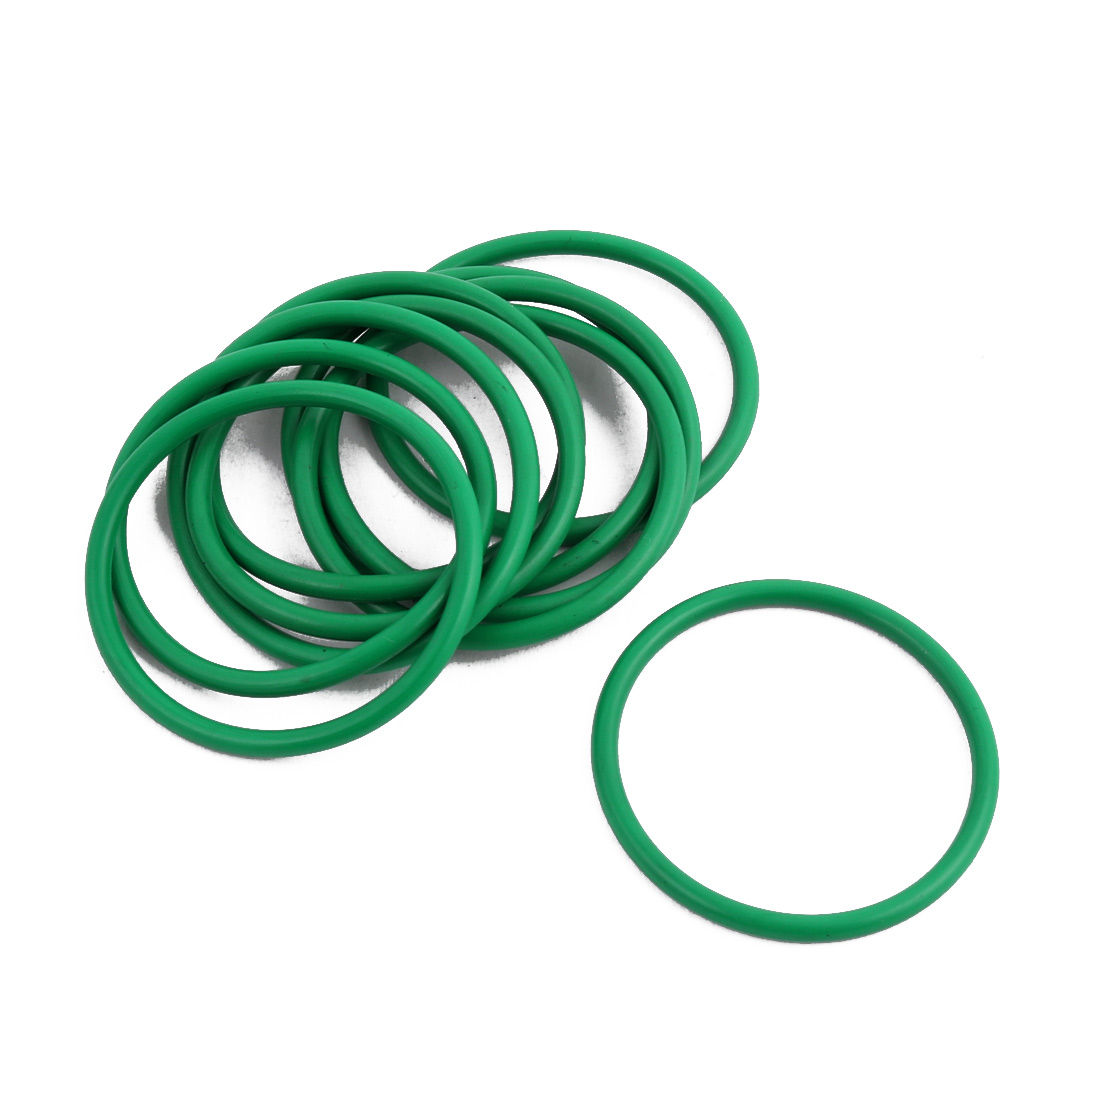 10Pcs Green 30 x 1.9mm Industrial Flexible Rubber O Ring Oil Sealing Grommets